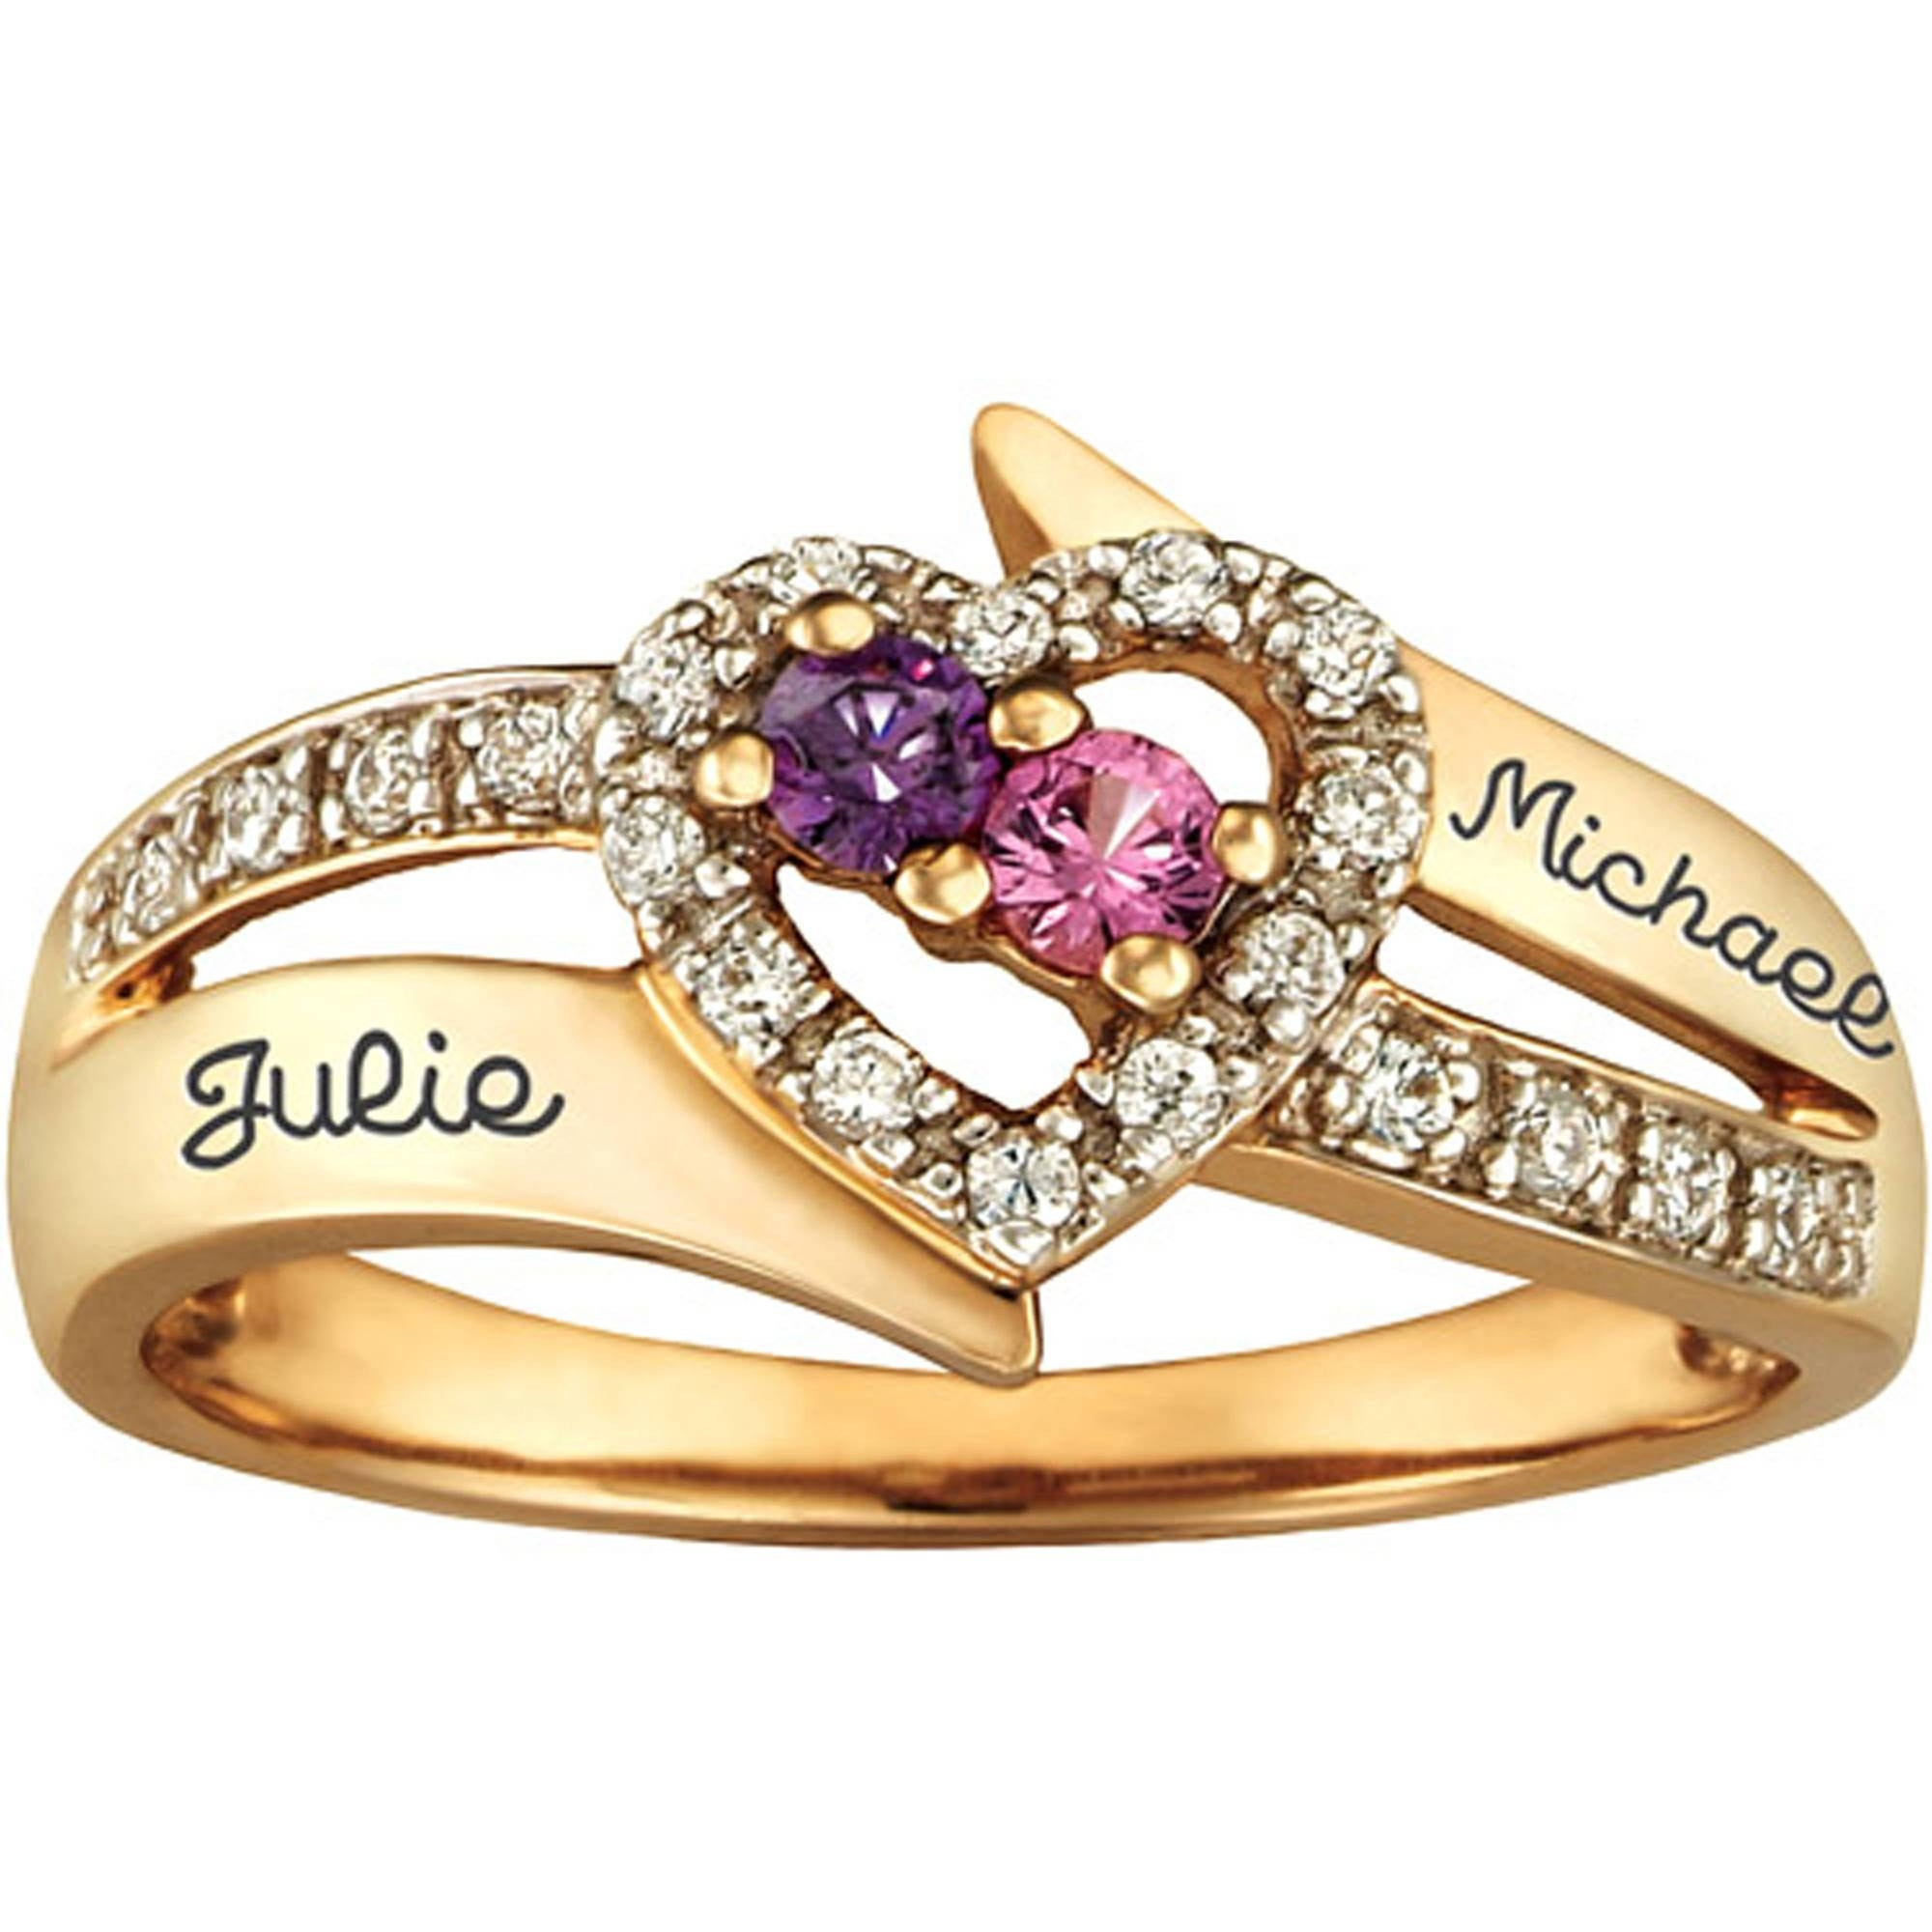 Personalized Keepsake Enchantment Promise Ring With Birthstones In Walmart Keepsake Engagement Rings (Gallery 11 of 15)